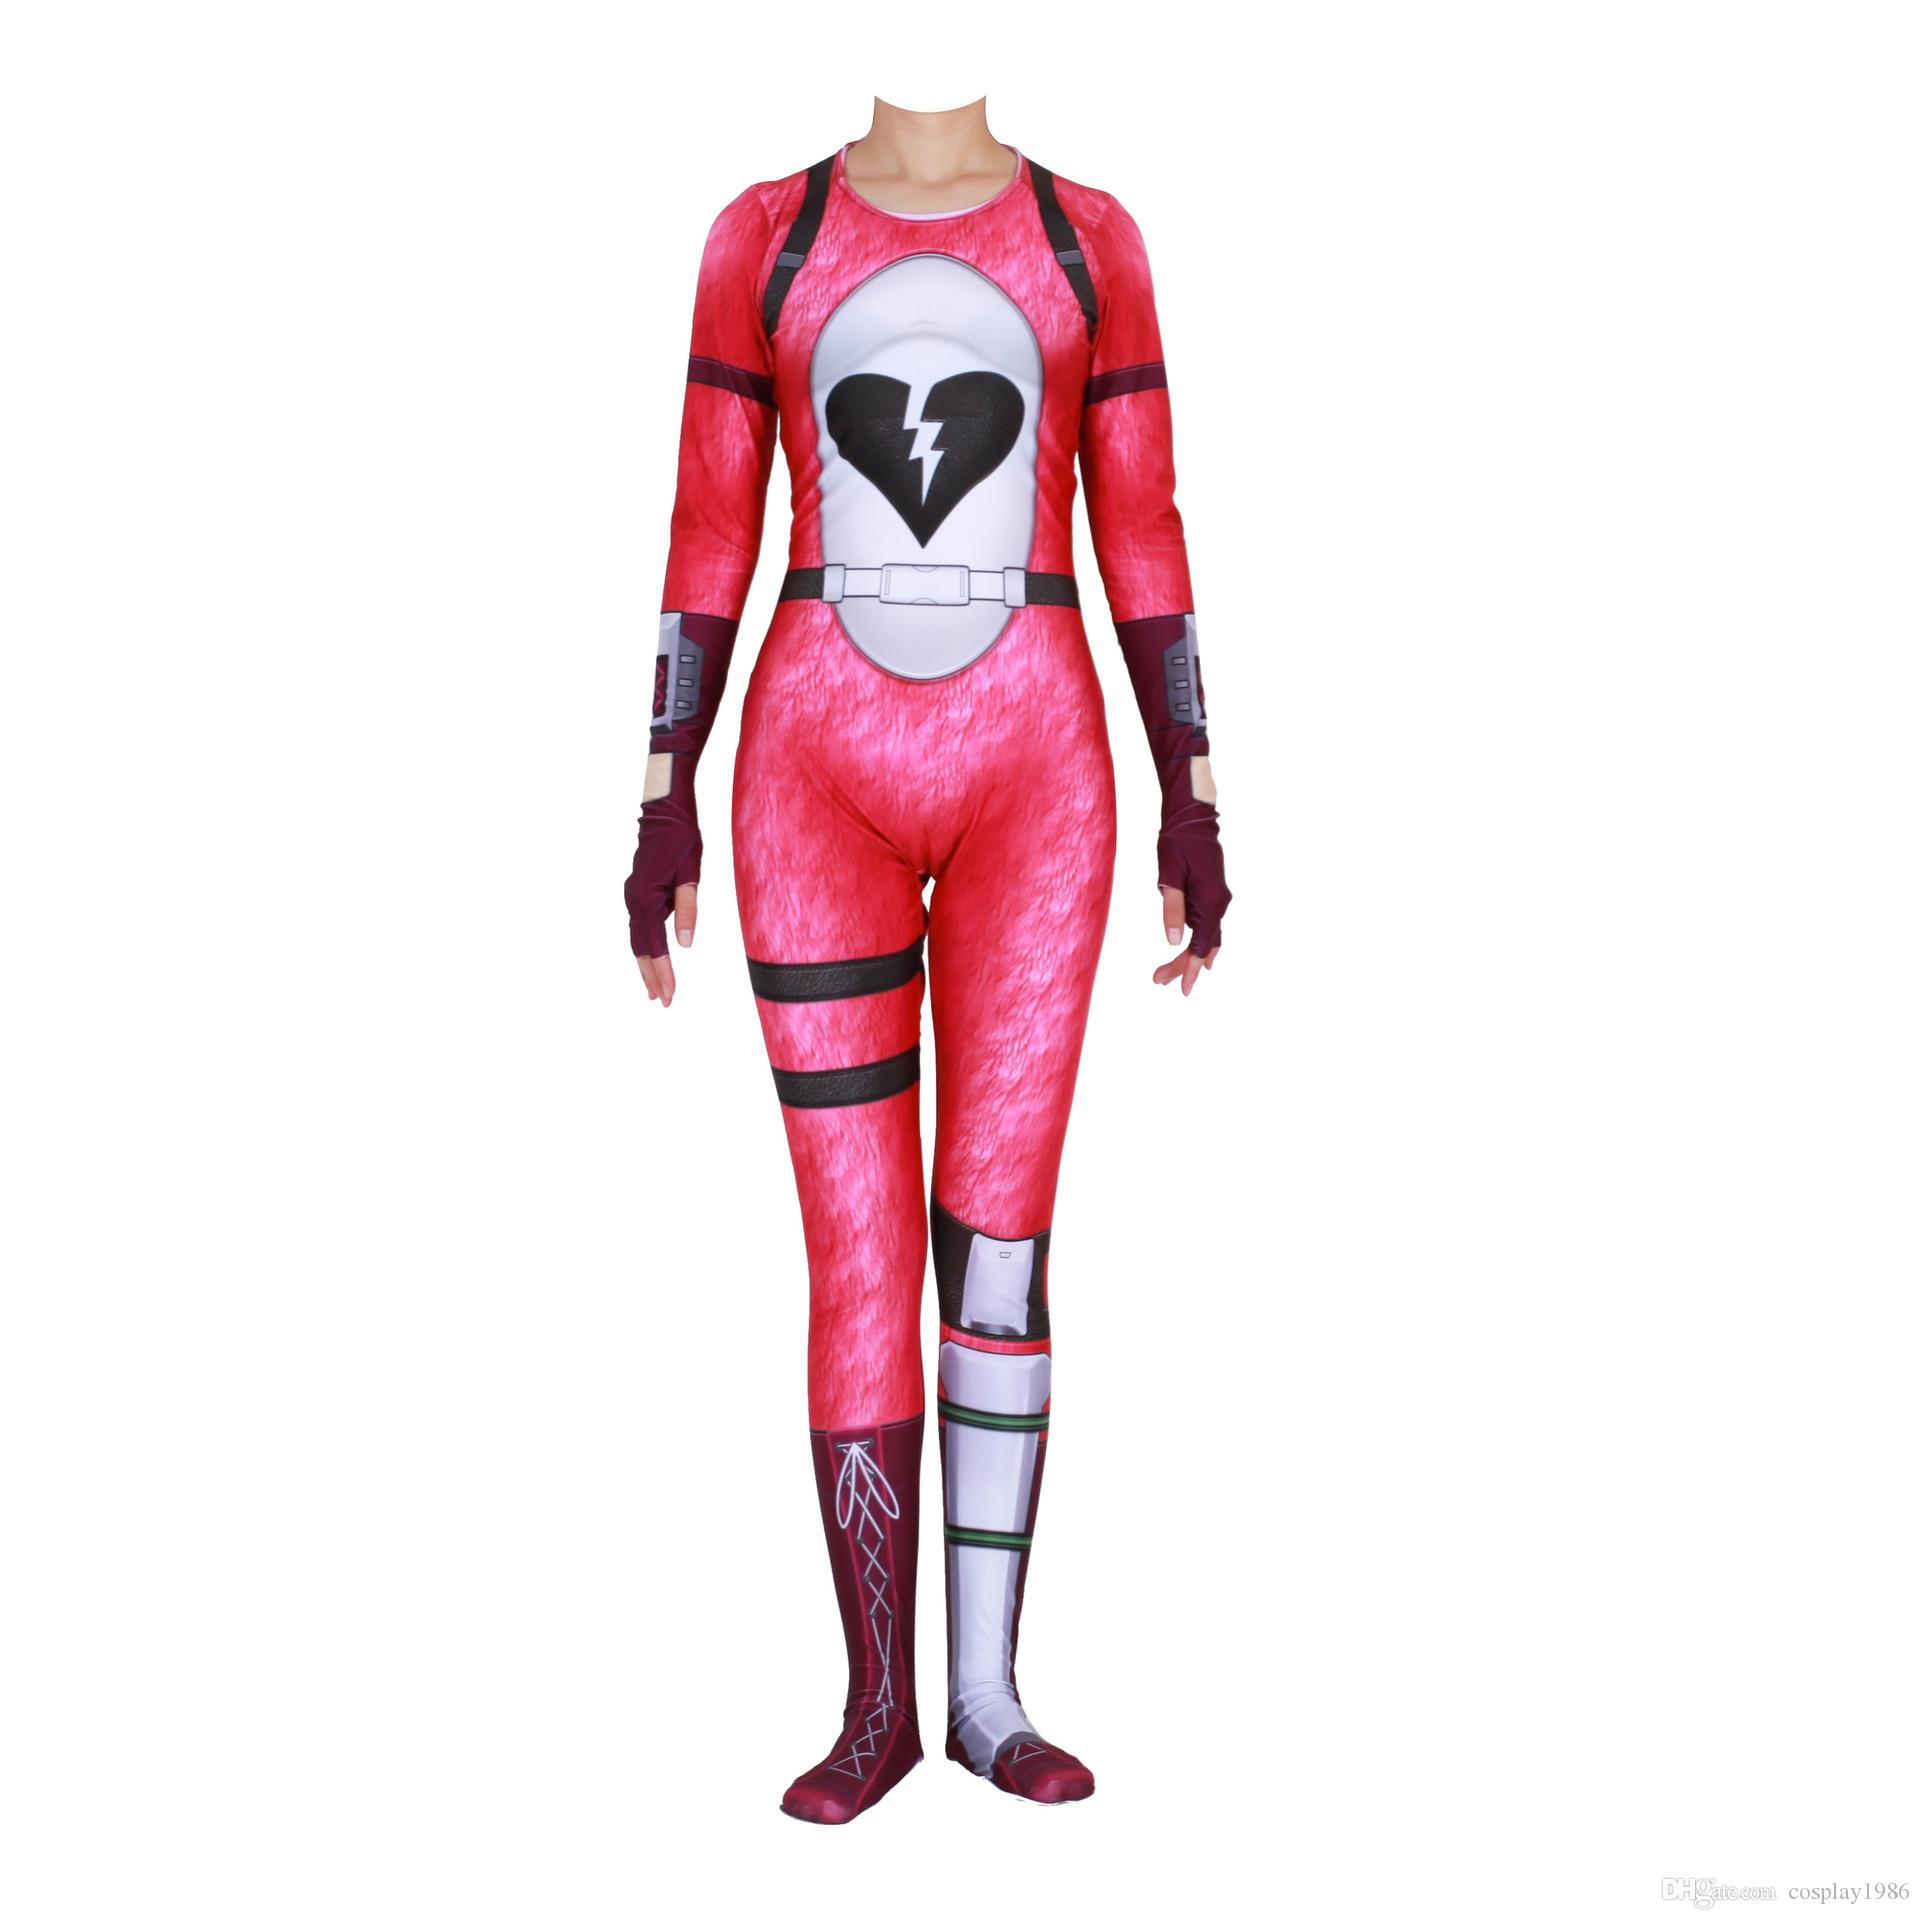 Fortnite Halloween Costumes 2019.Cosplay Game Fortnite Cuddle Team Adult Women Costume Halloween Party Dance Superhero Suit Plugsuit Jumpsuits Catsuit Zentai